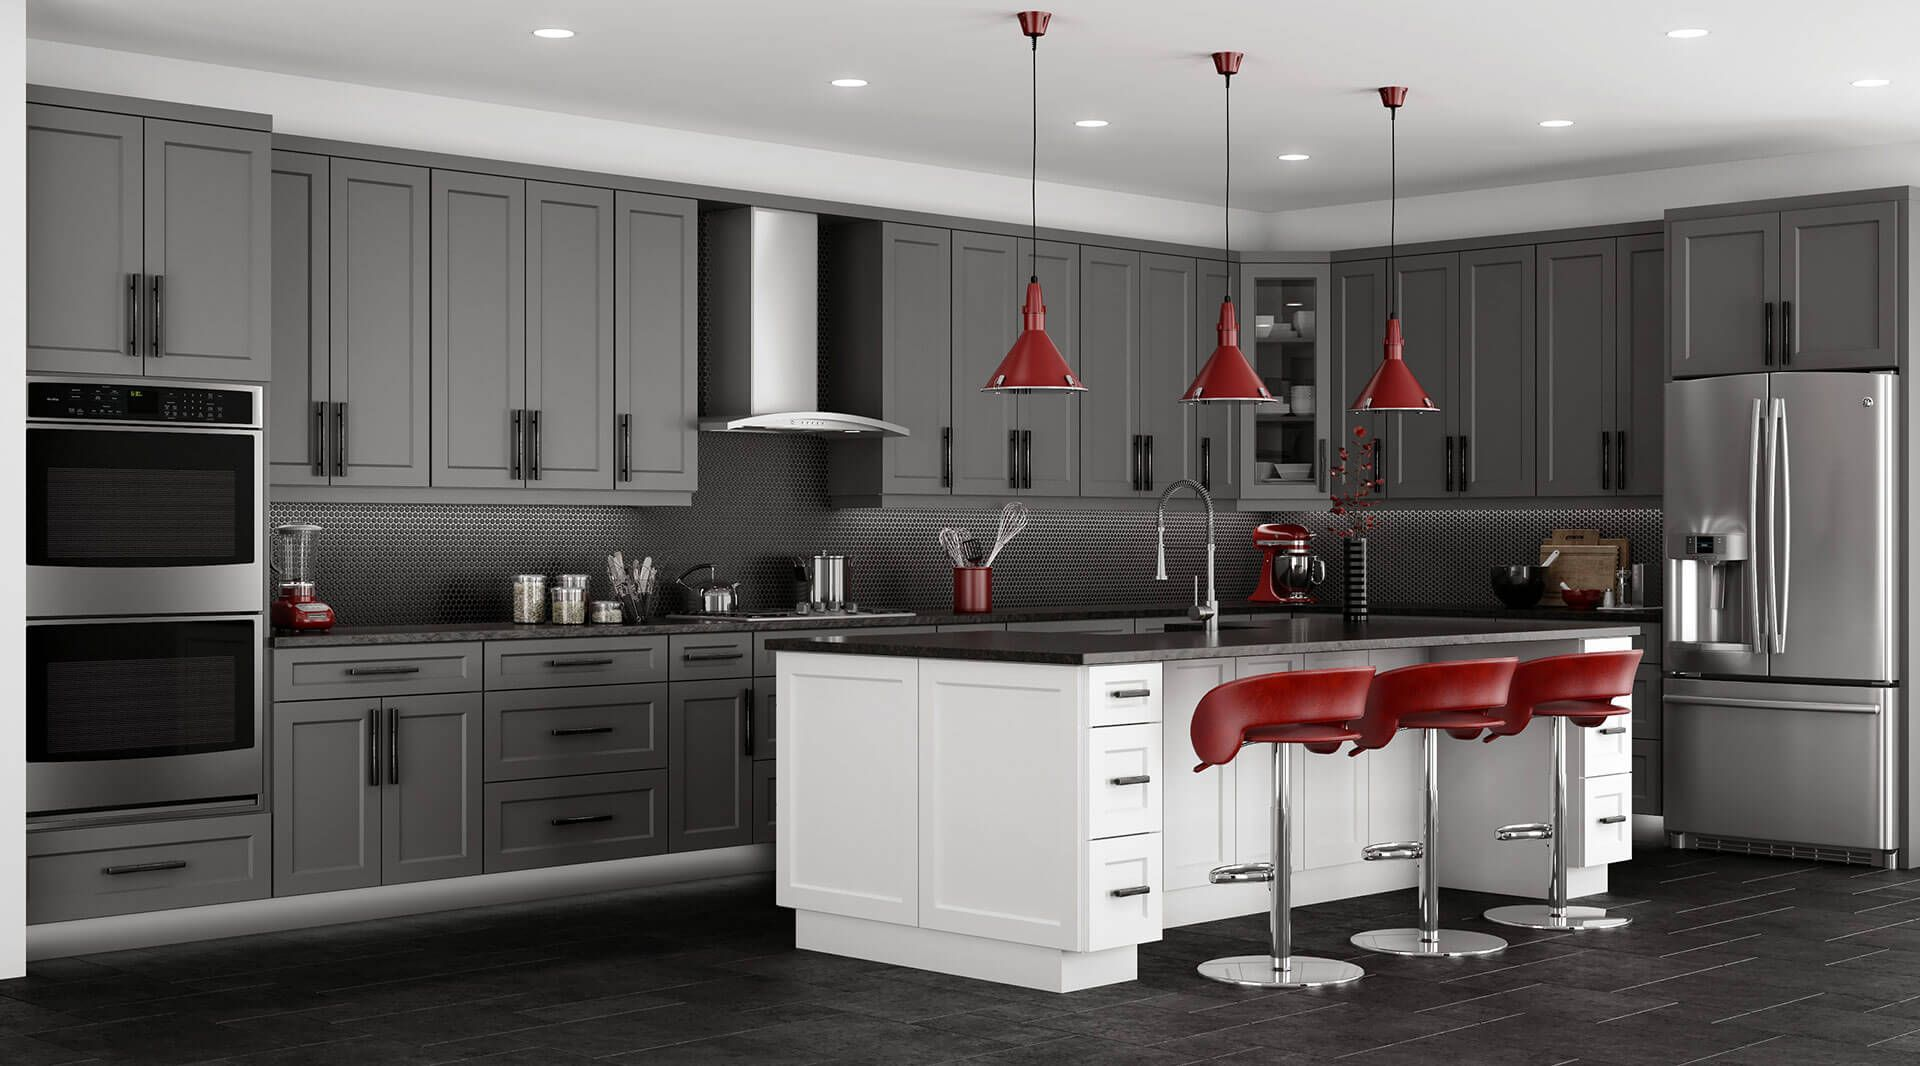 Shaker white cabinets lifedesign home kitchen cabinet ideas